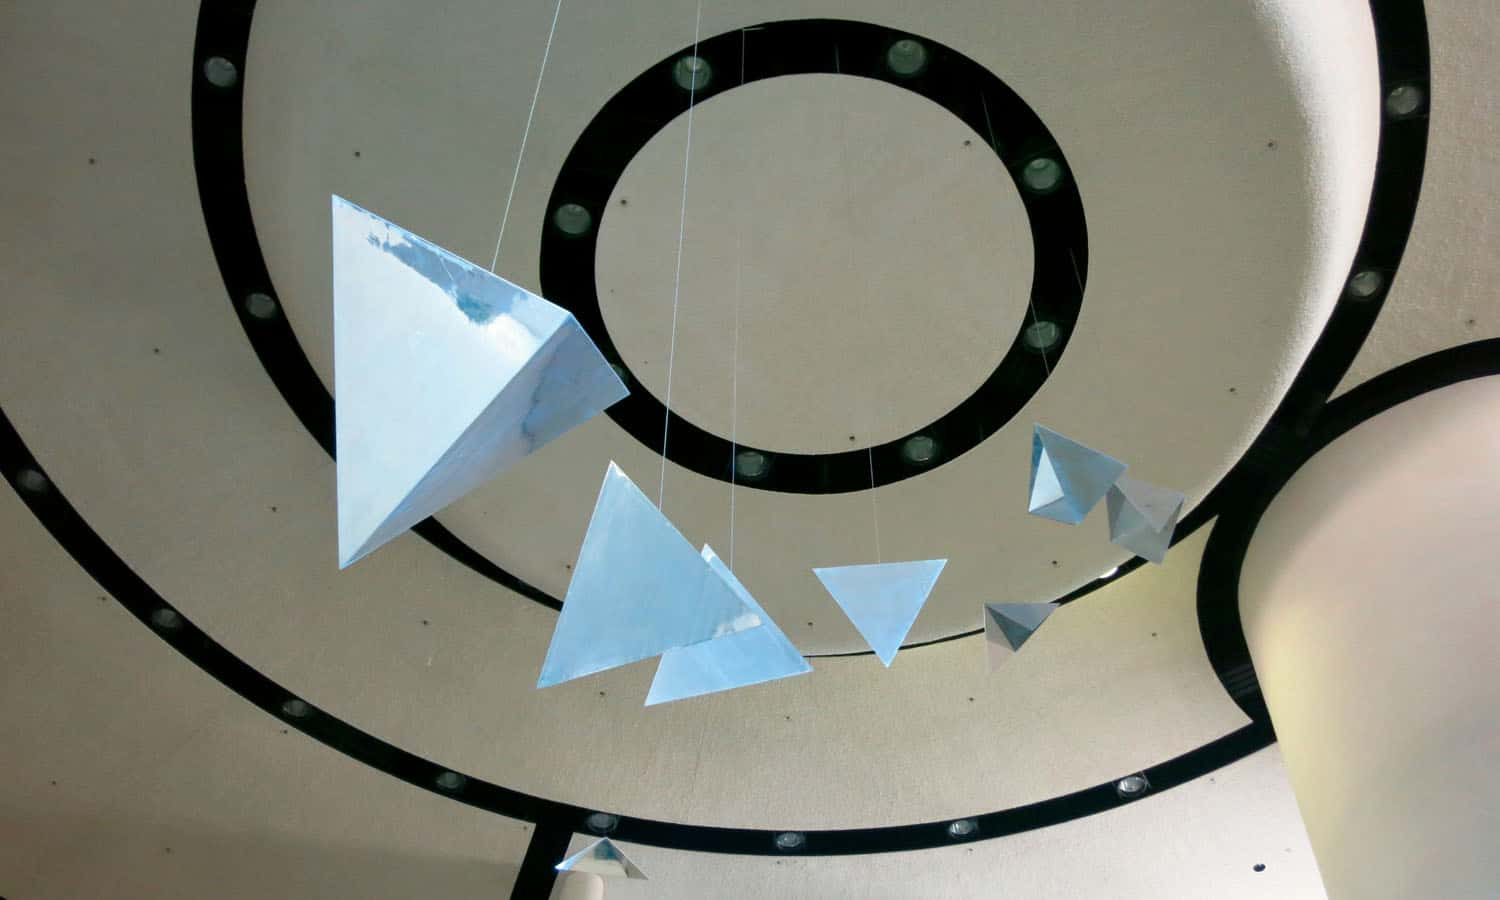 White finishes characterize the 20m high rotunda, which is the art gallery of the civic centre